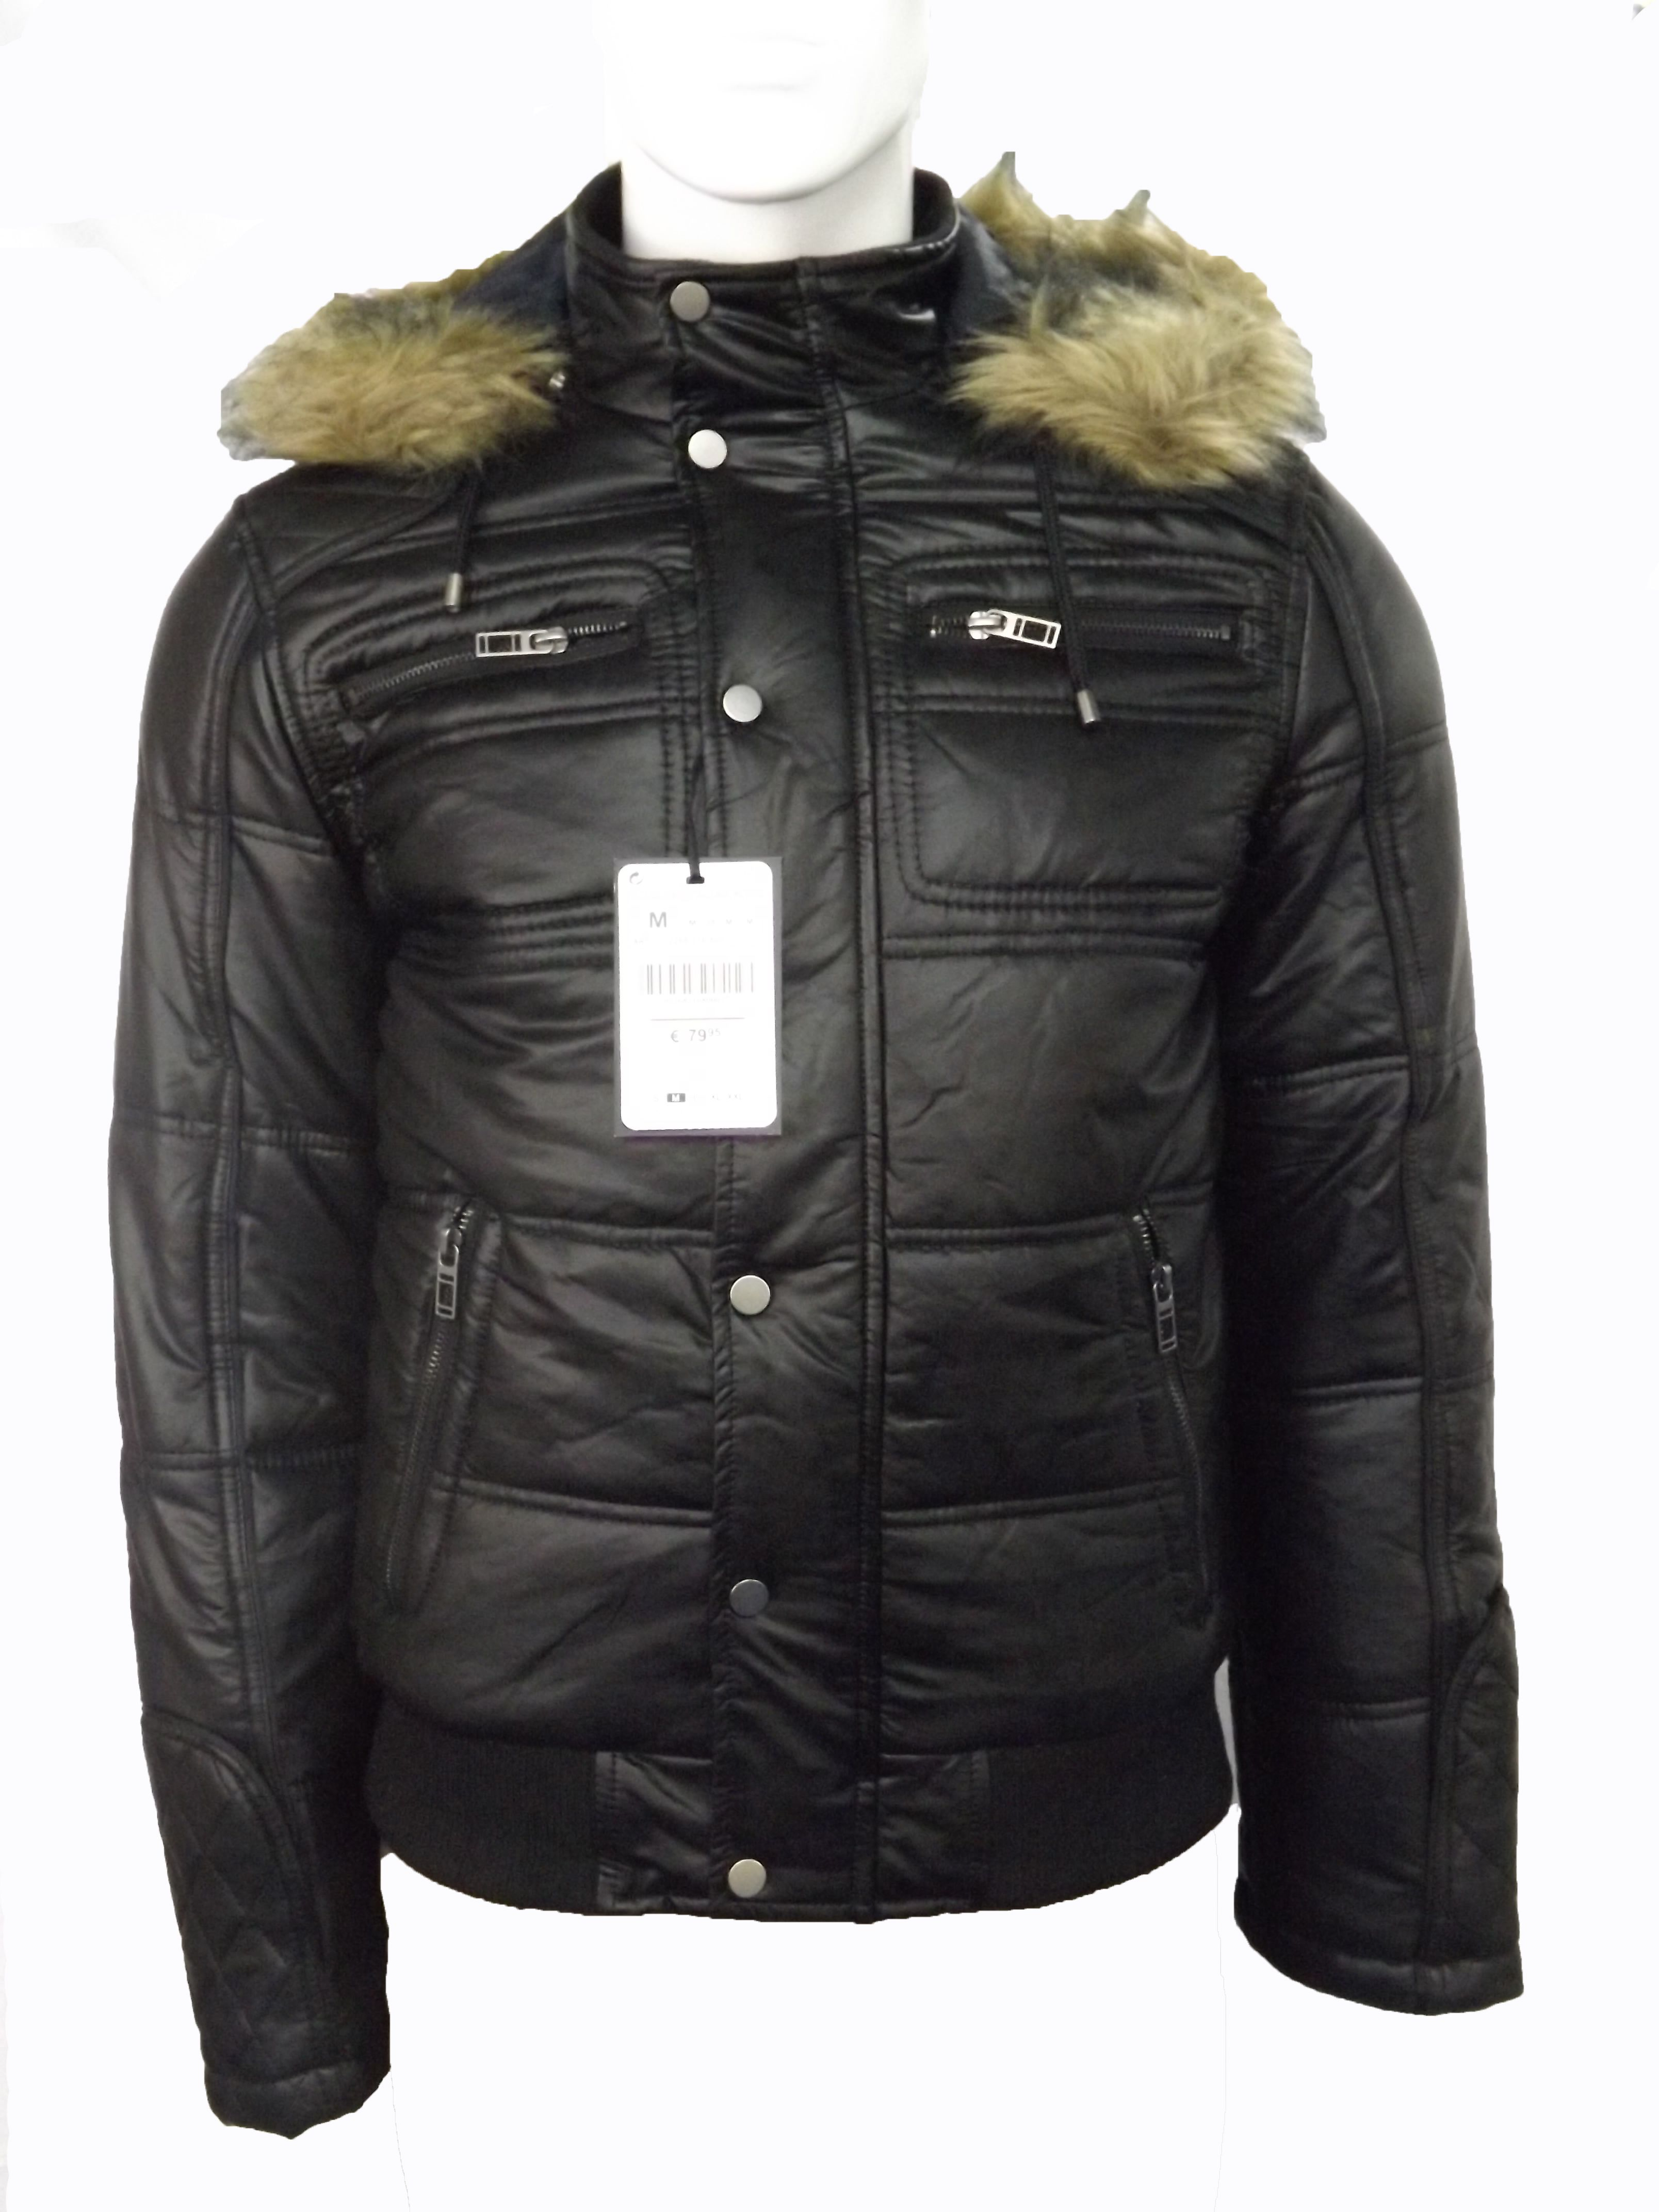 Zara Mens Faux Leather Puffer Jacket . You can purchase it